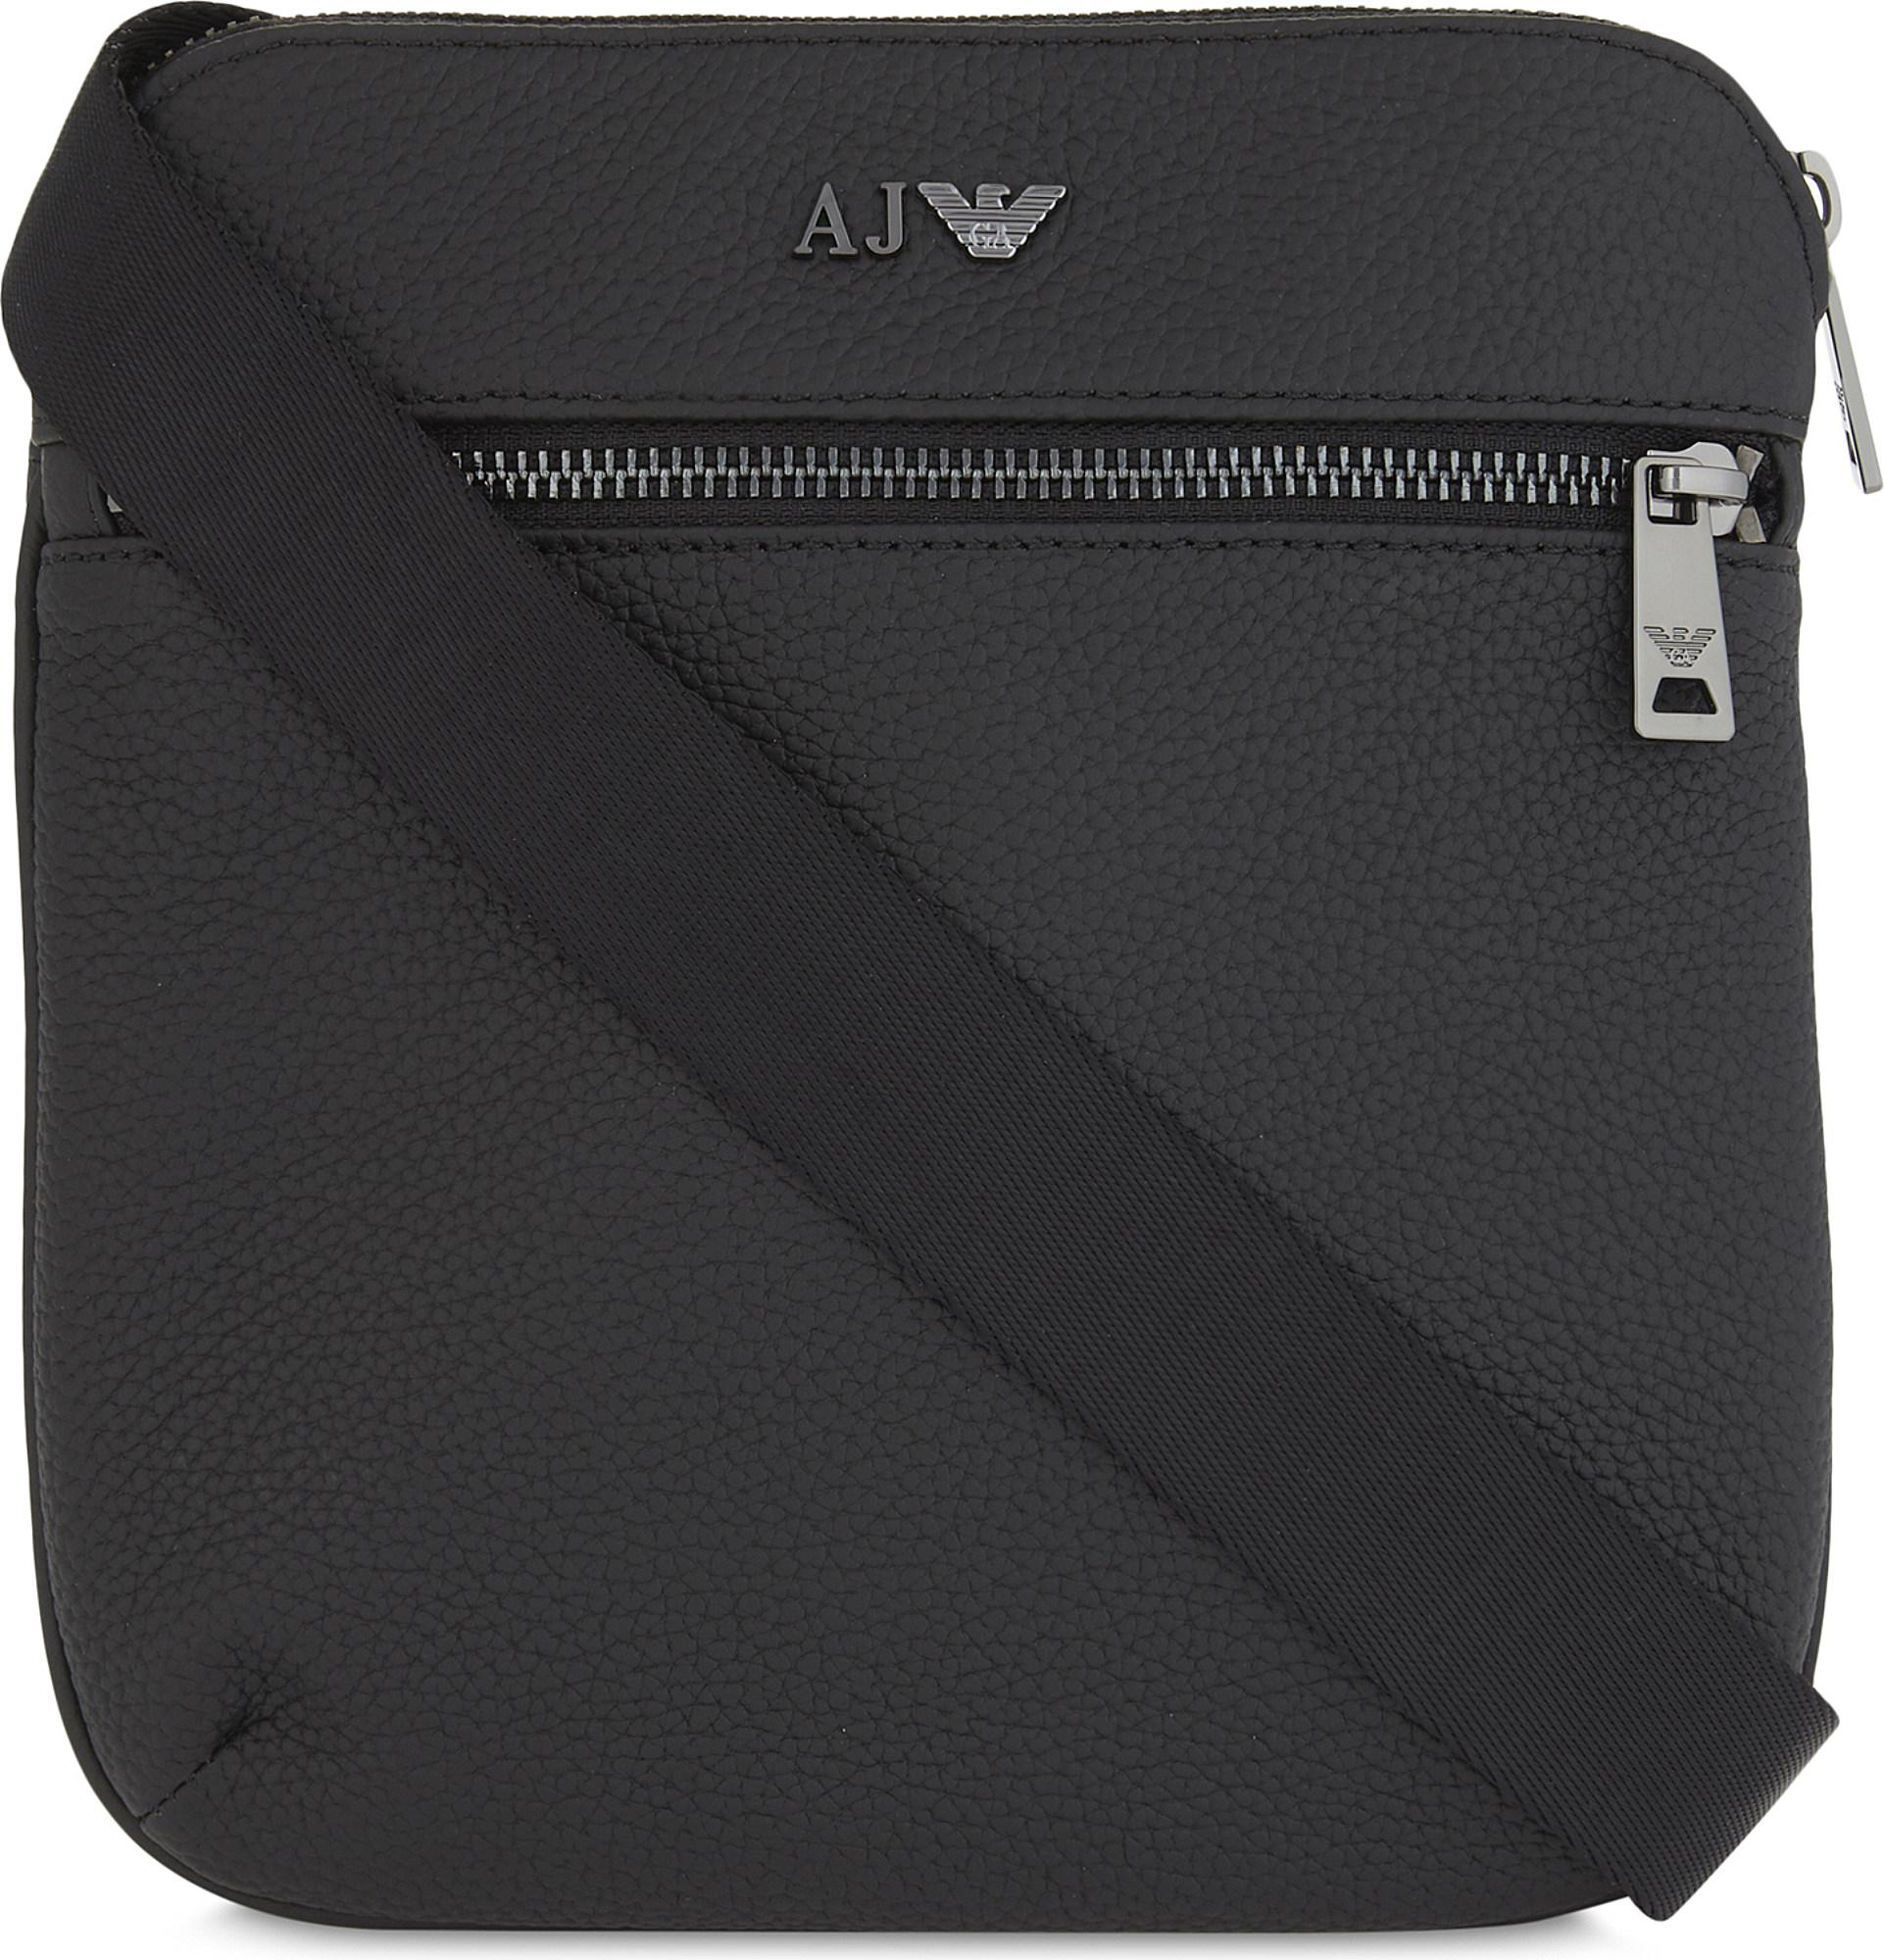 c63a146f872 Armani Jeans Grained-leather Messenger Bag in Black for Men - Lyst